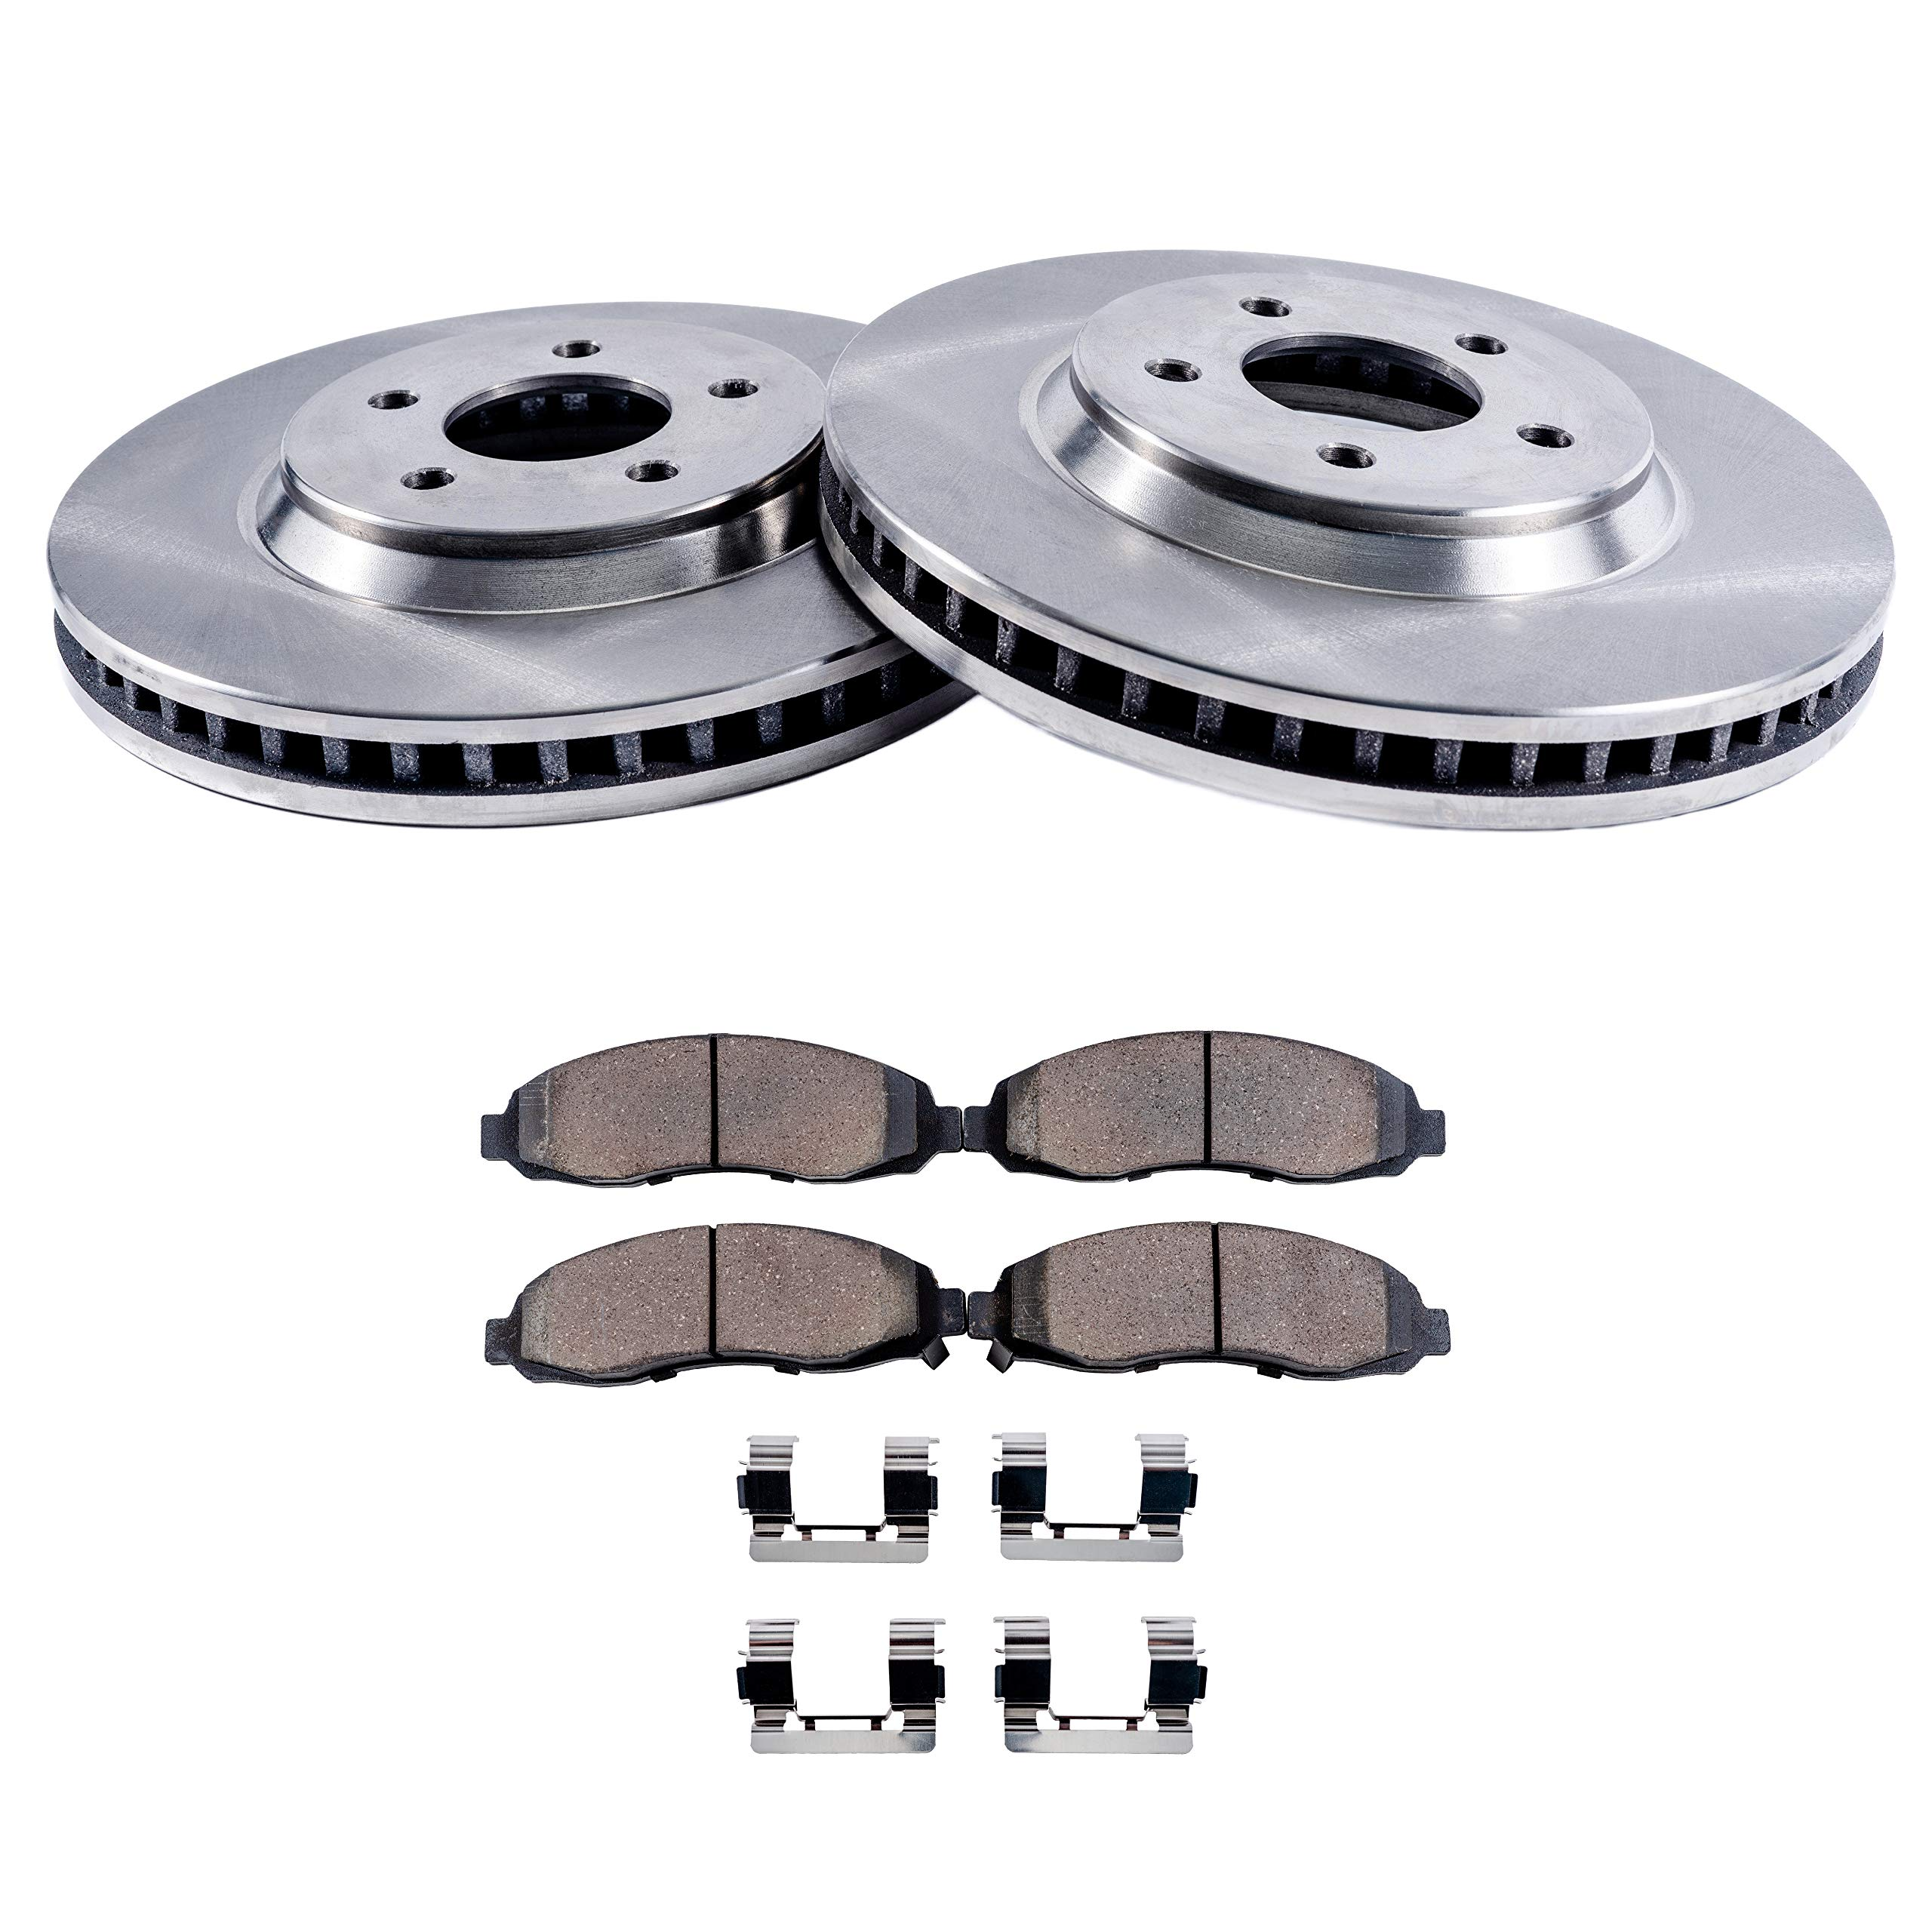 Detroit Axle - Front Disc Brake Rotors & Ceramic Pads w/Clips Hardware Kit for 09-14 Ford Flex Standard Brakes - [11-13 Explorer No Police ] - 10-14 Taurus No Turbo - 10-14 MKT Standard Brakes